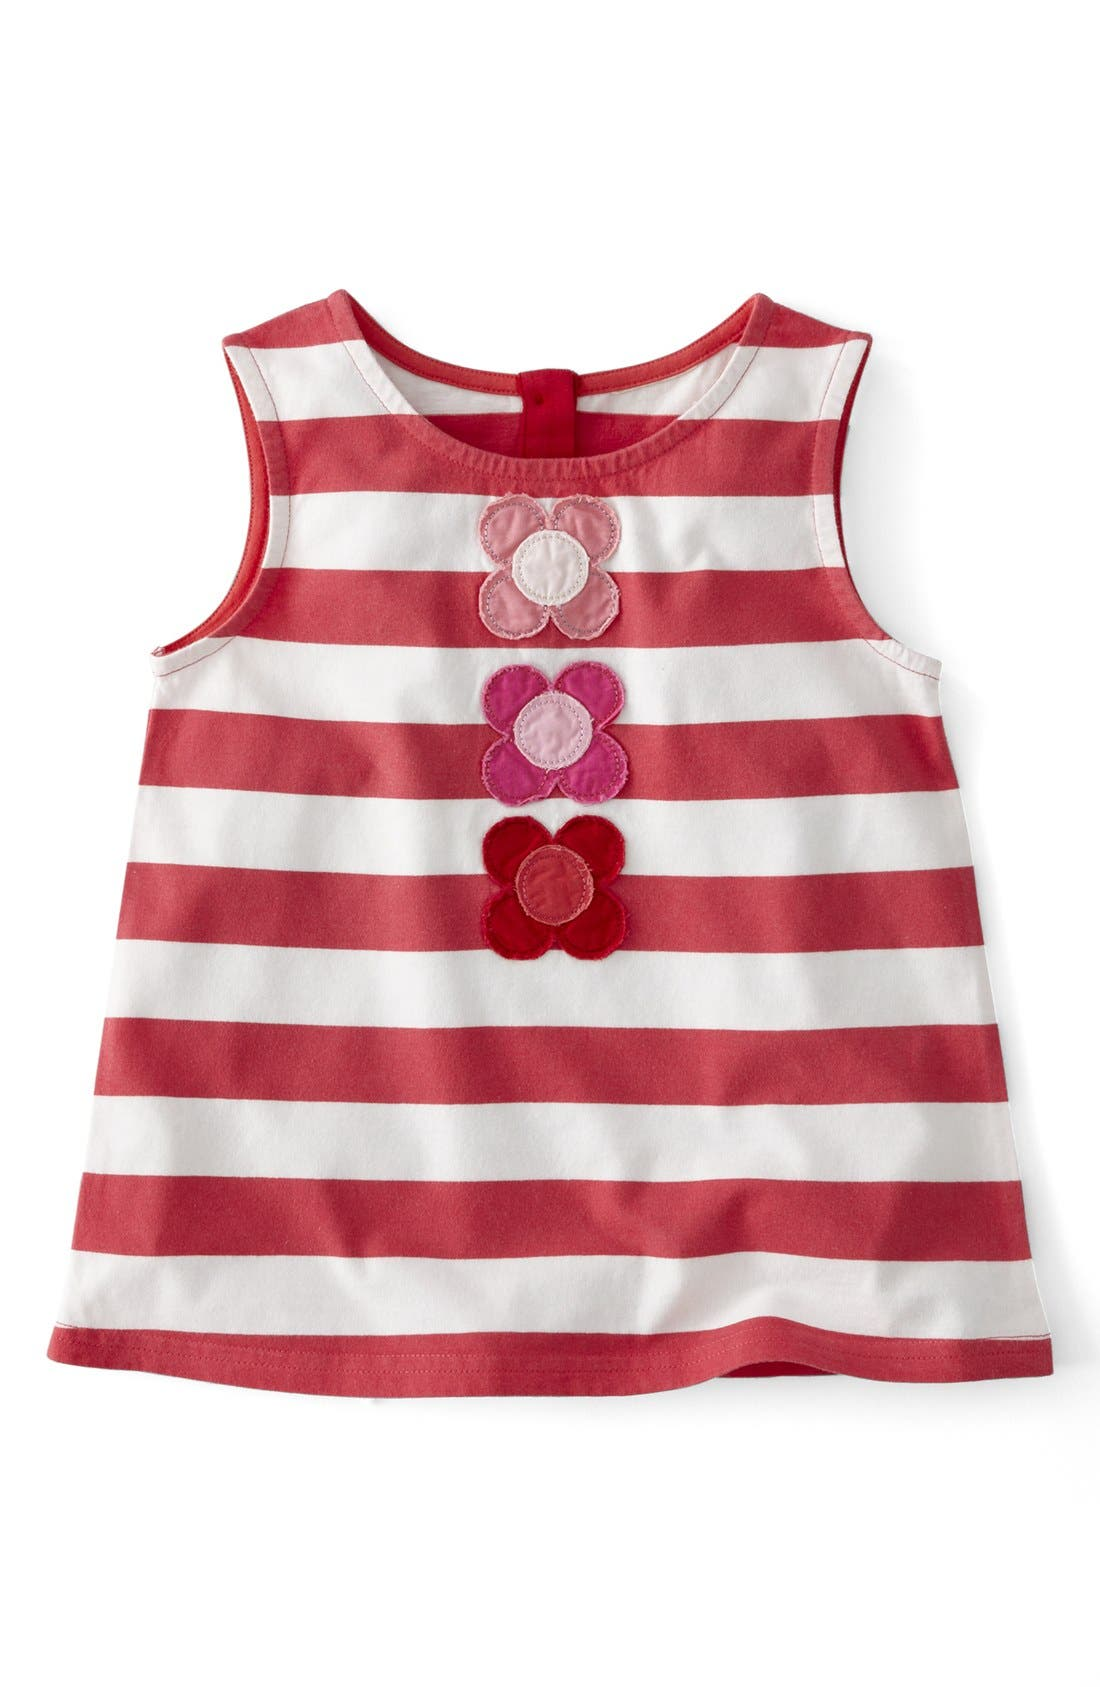 Main Image - Mini Boden 'Fab Flower' A-Line Sleeveless Top (Toddler Girls, Little Girls & Big Girls)